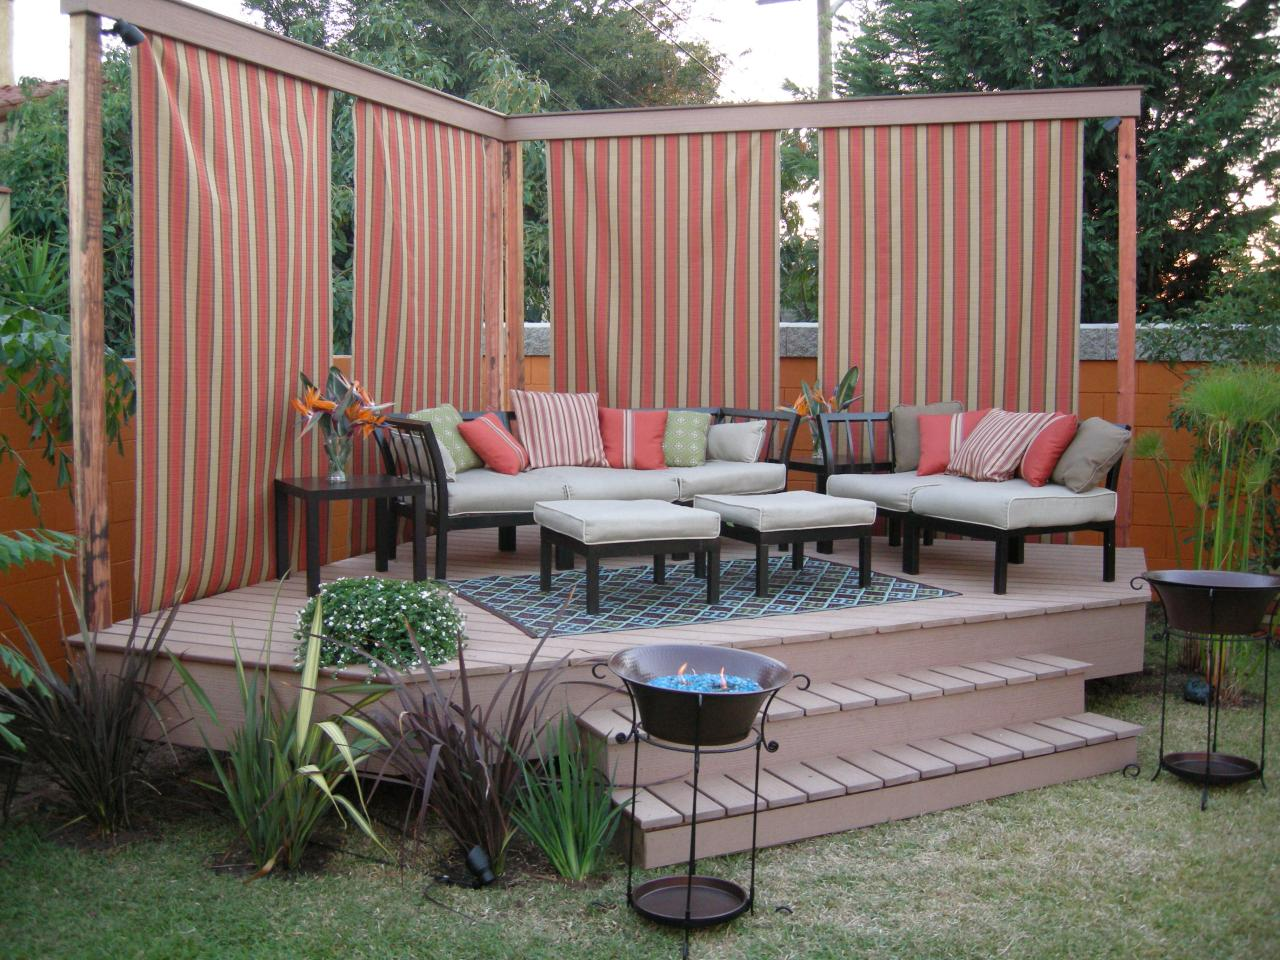 How to build a detached deck hgtv for Outside decking material